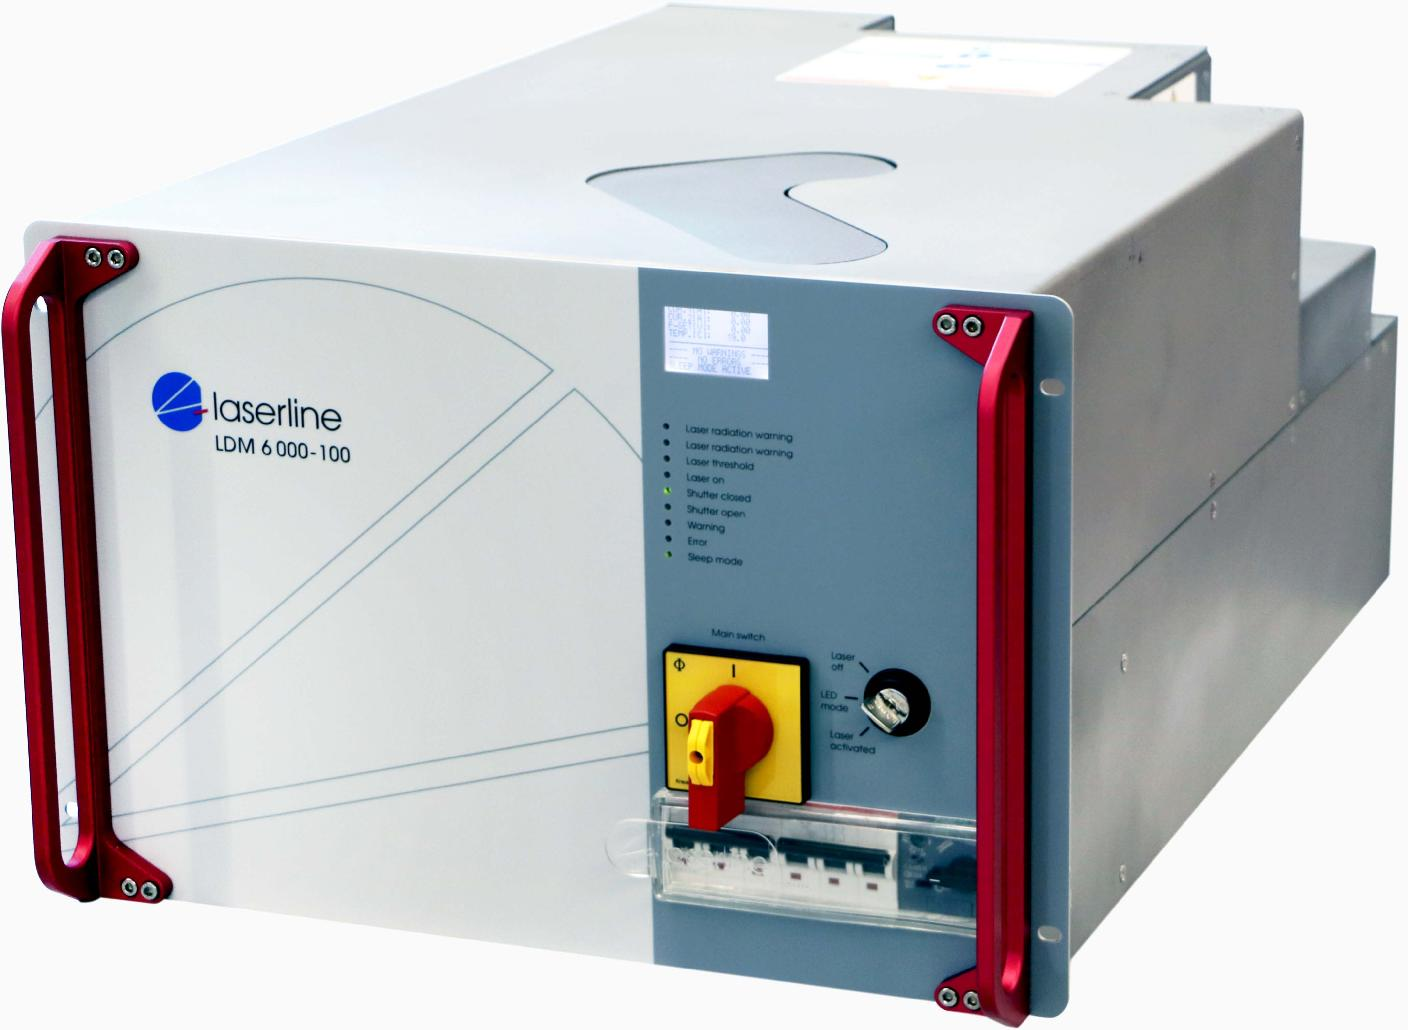 Compact diode laser LDM 6000-100